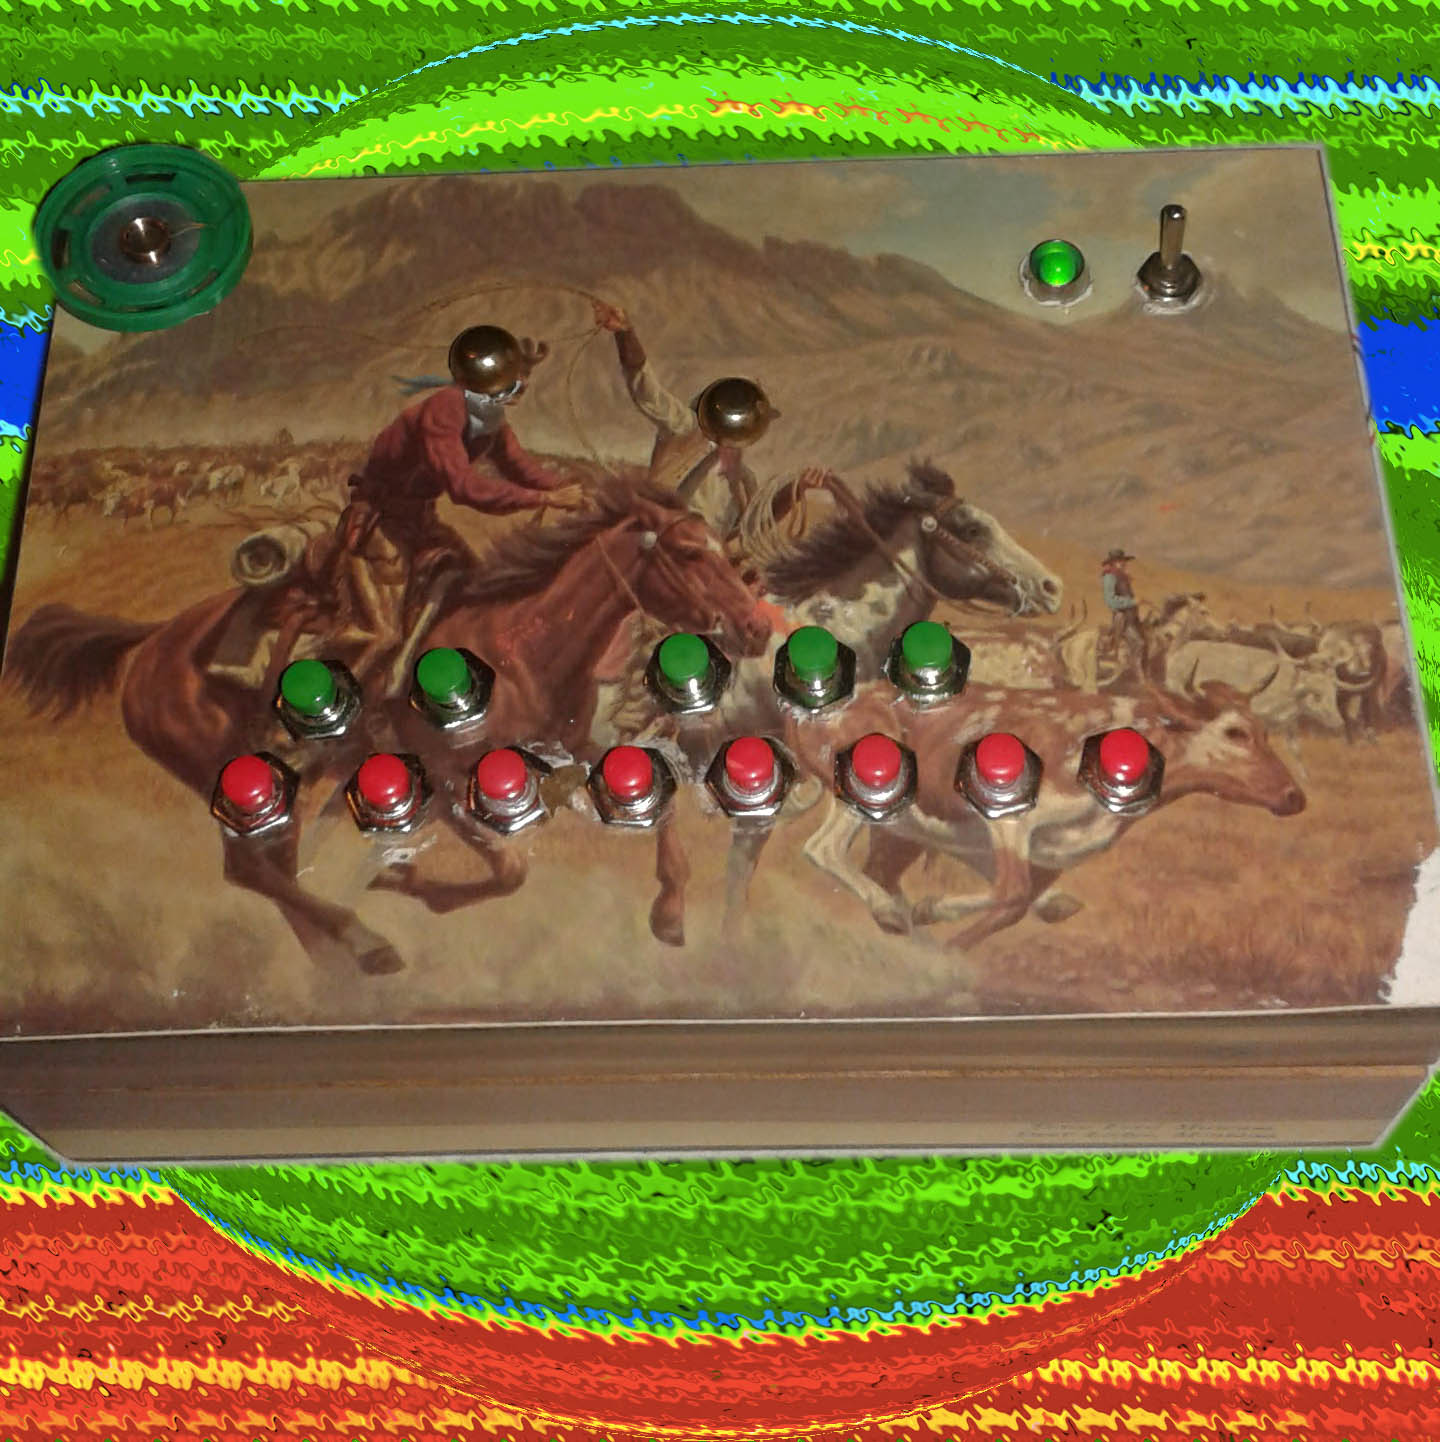 cowboy-jpg.52859_DIY Electronics/circuit bending..._Your Projects & Websites_Squat the Planet_5:27 PM